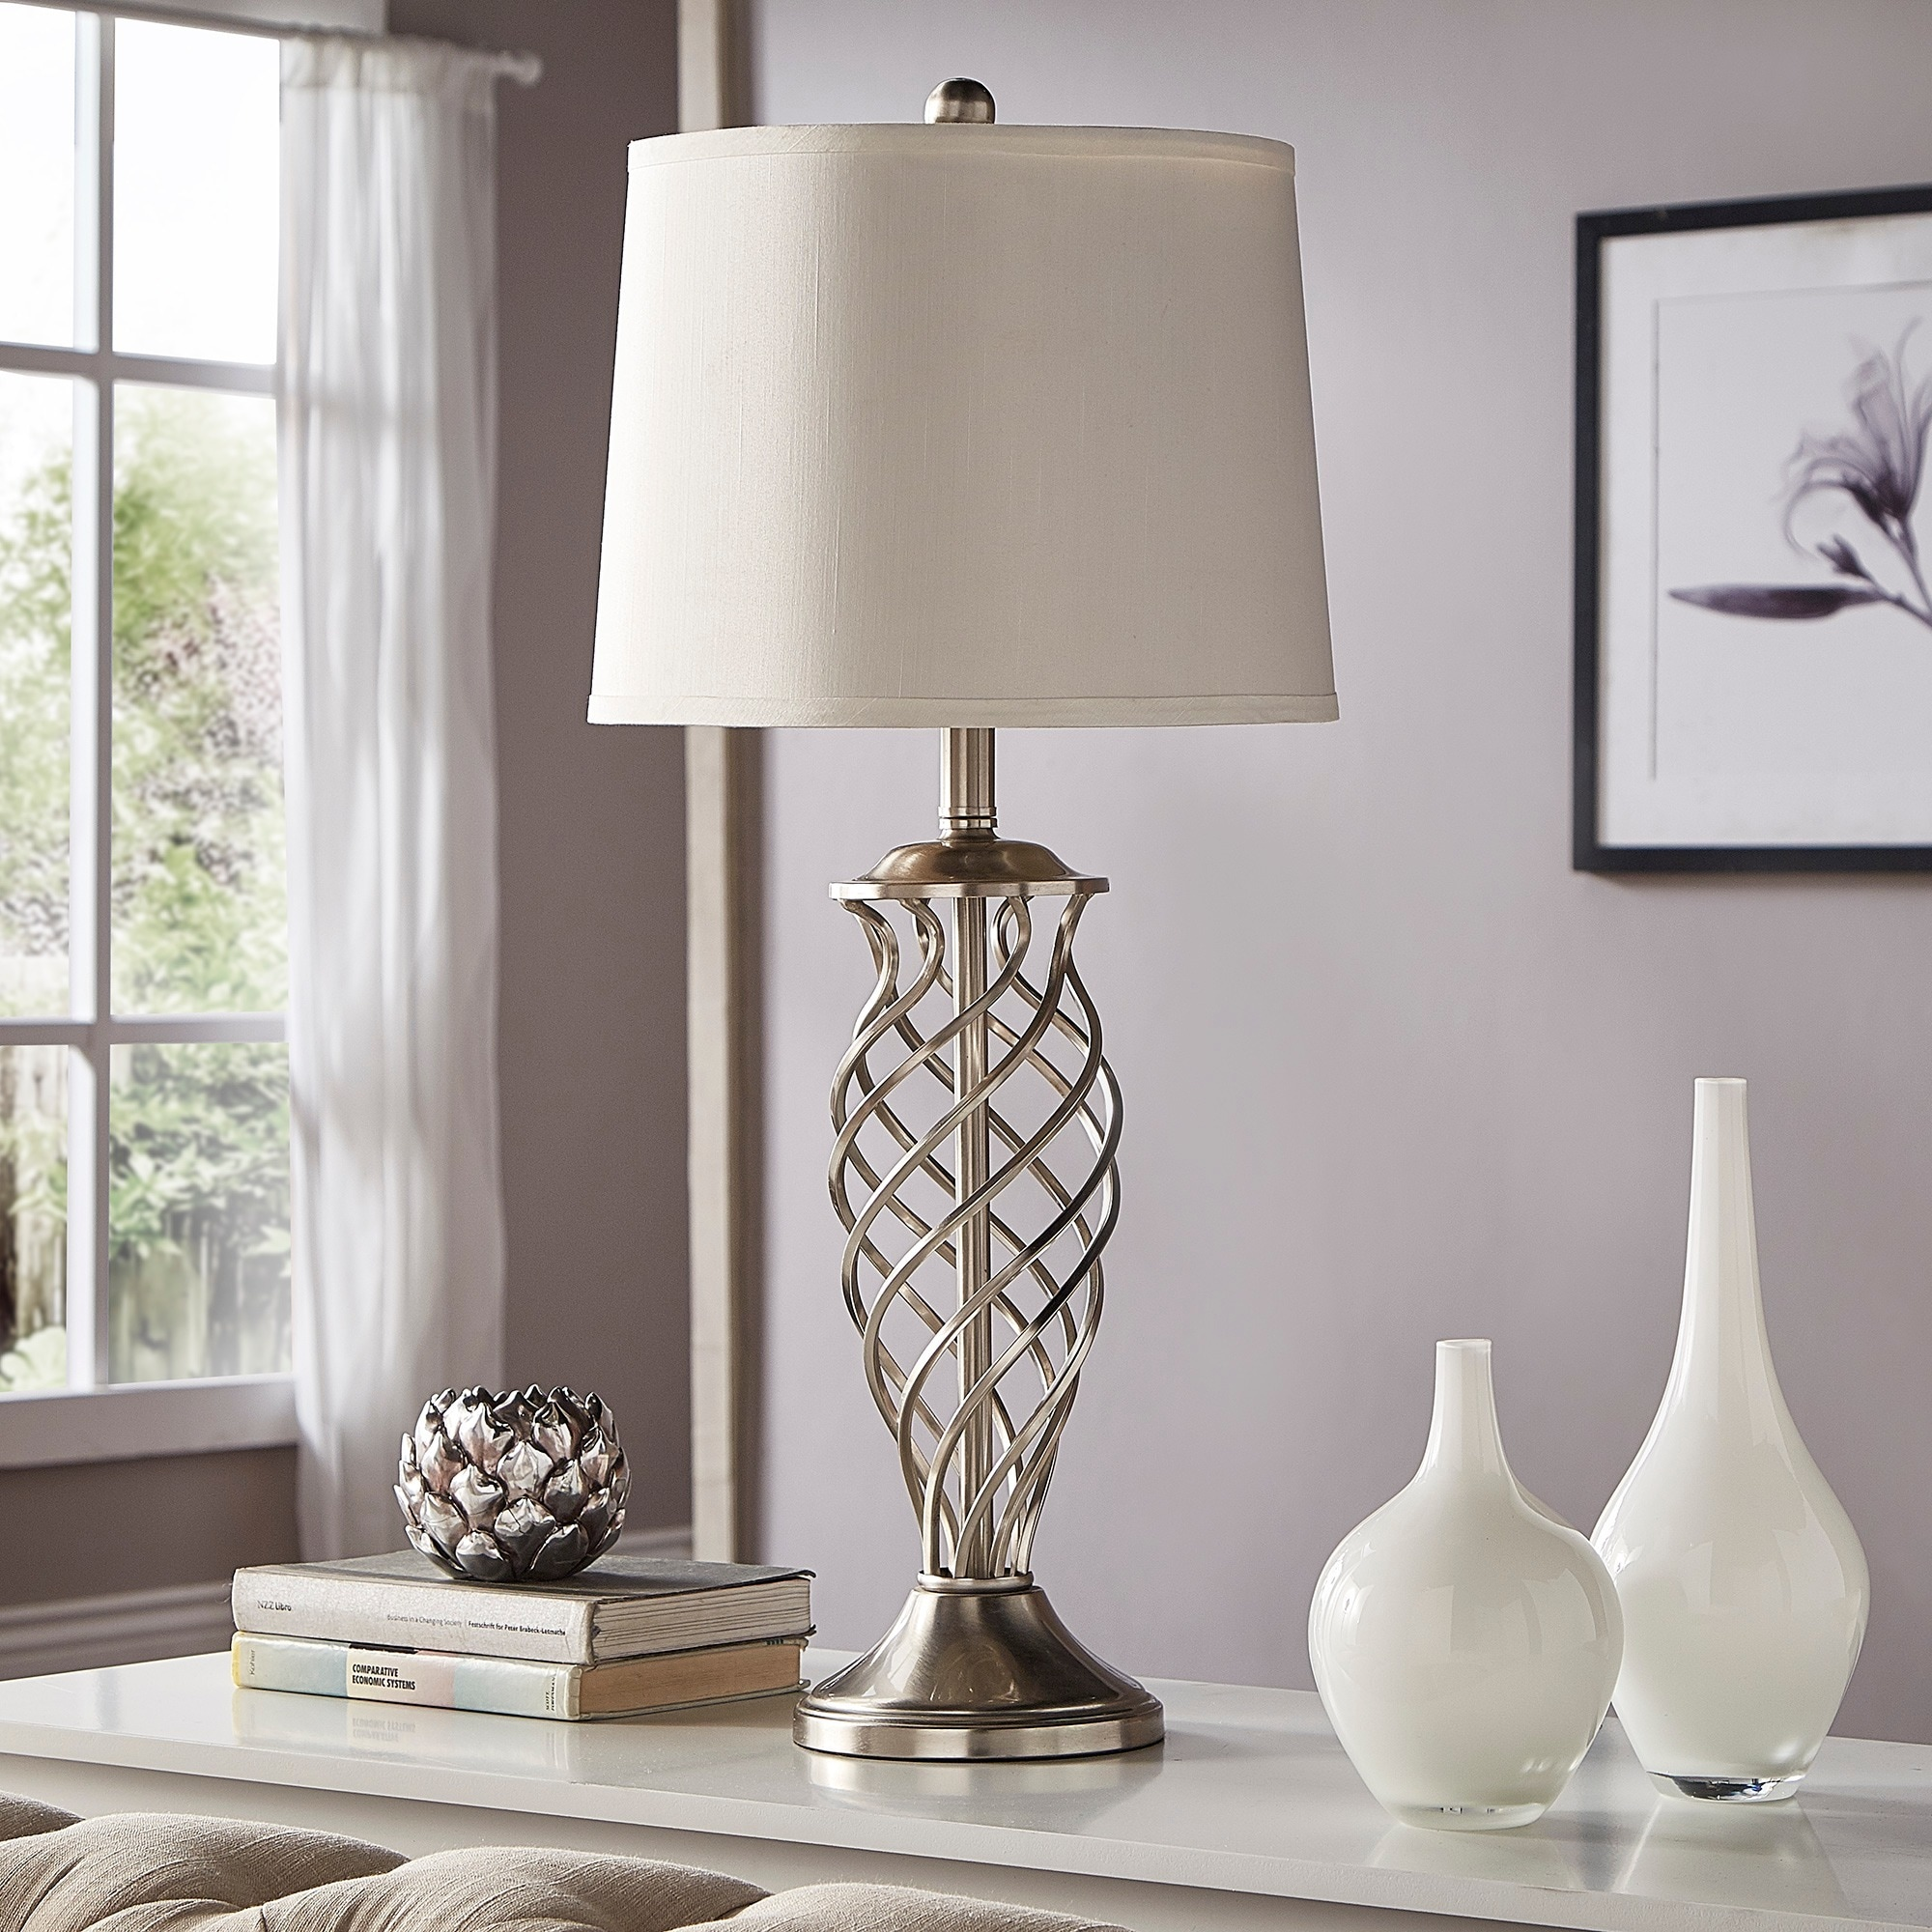 Cornelia 3 way satin nickel contoured cage base 1 light accent table lamp by inspire q bold